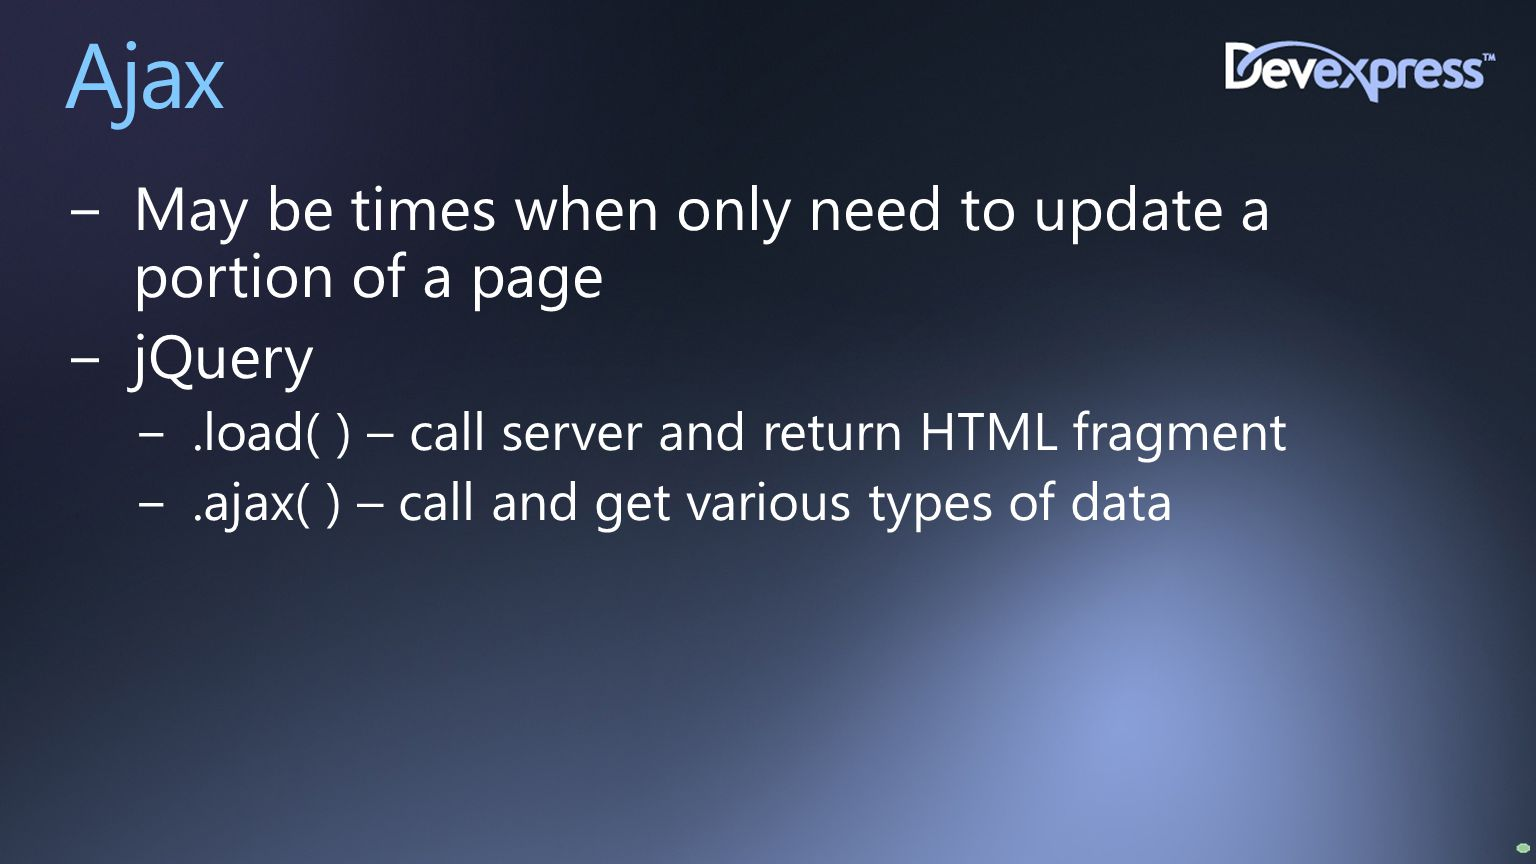 Ajax −May be times when only need to update a portion of a page −jQuery −.load( ) – call server and return HTML fragment −.ajax( ) – call and get vari